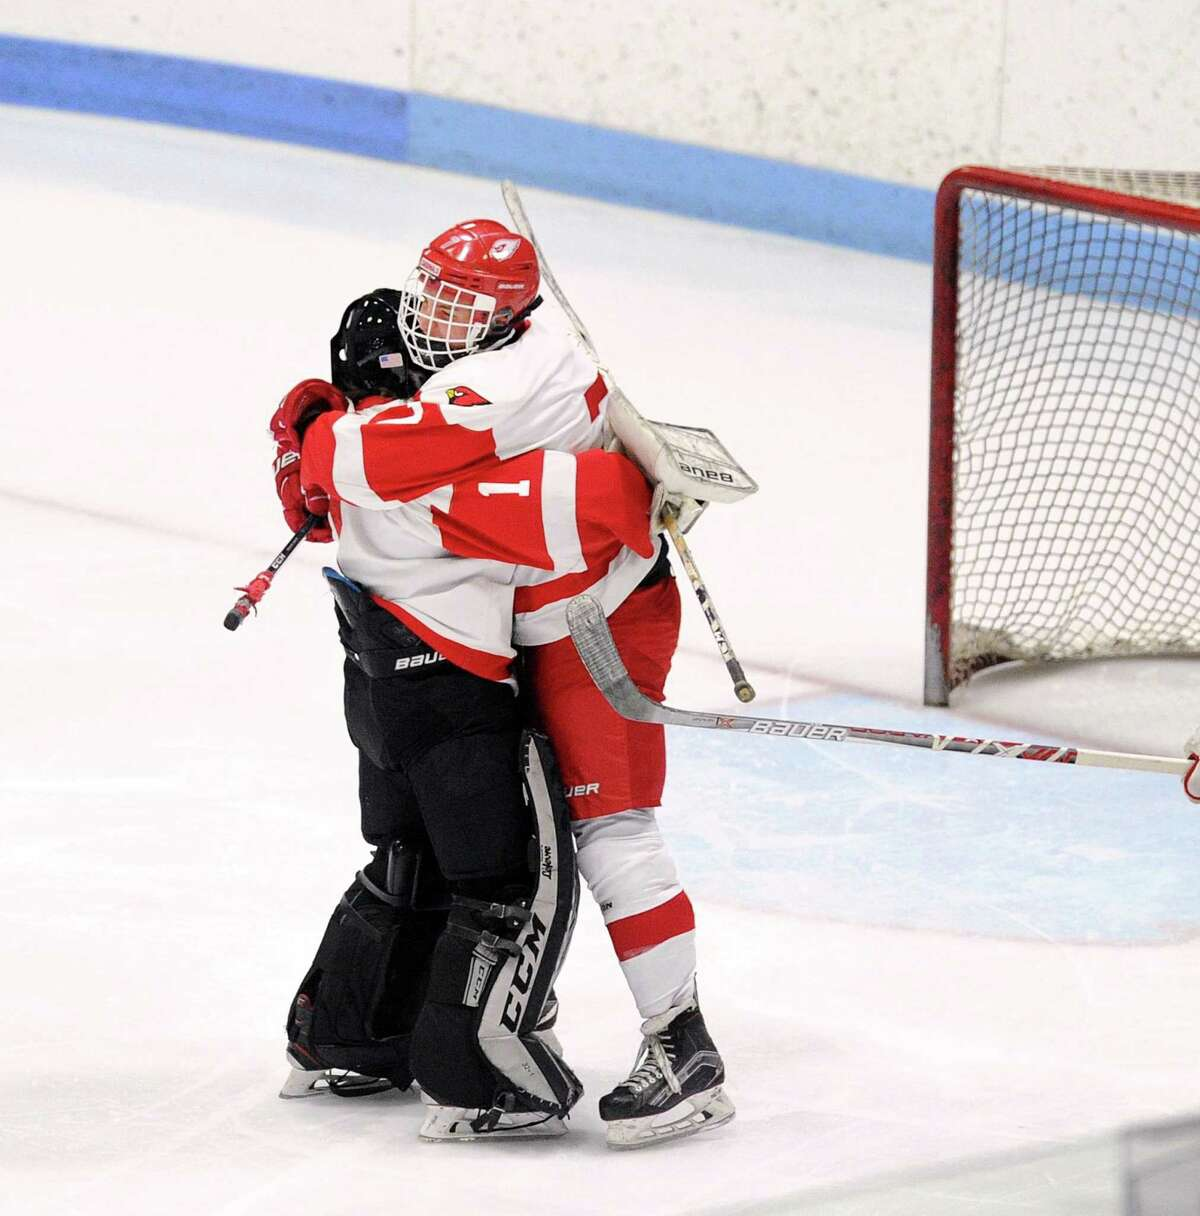 Andrew Frost, right, of Greenwich, hugs his goalie Ben Nash after teammate Matthew Davey scored the winning goal in overtime to defeat Xavier 3-2 during the CIAC Division I boys ice hockey semifinals on Wednesday.